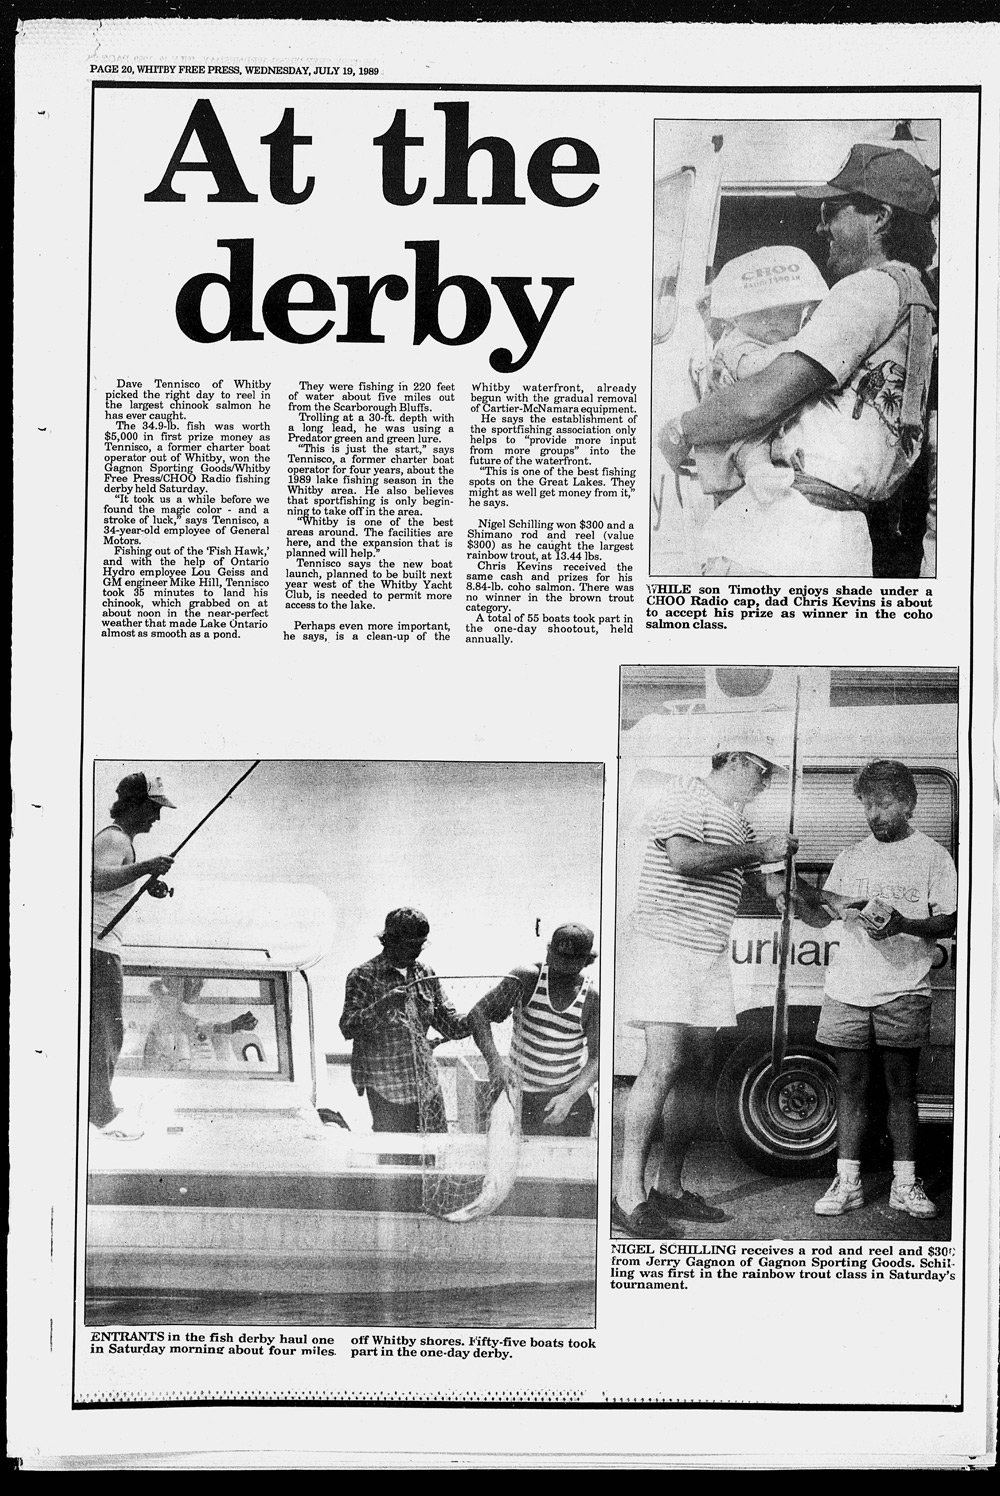 Whitby Free Press, 19 Jul 1989